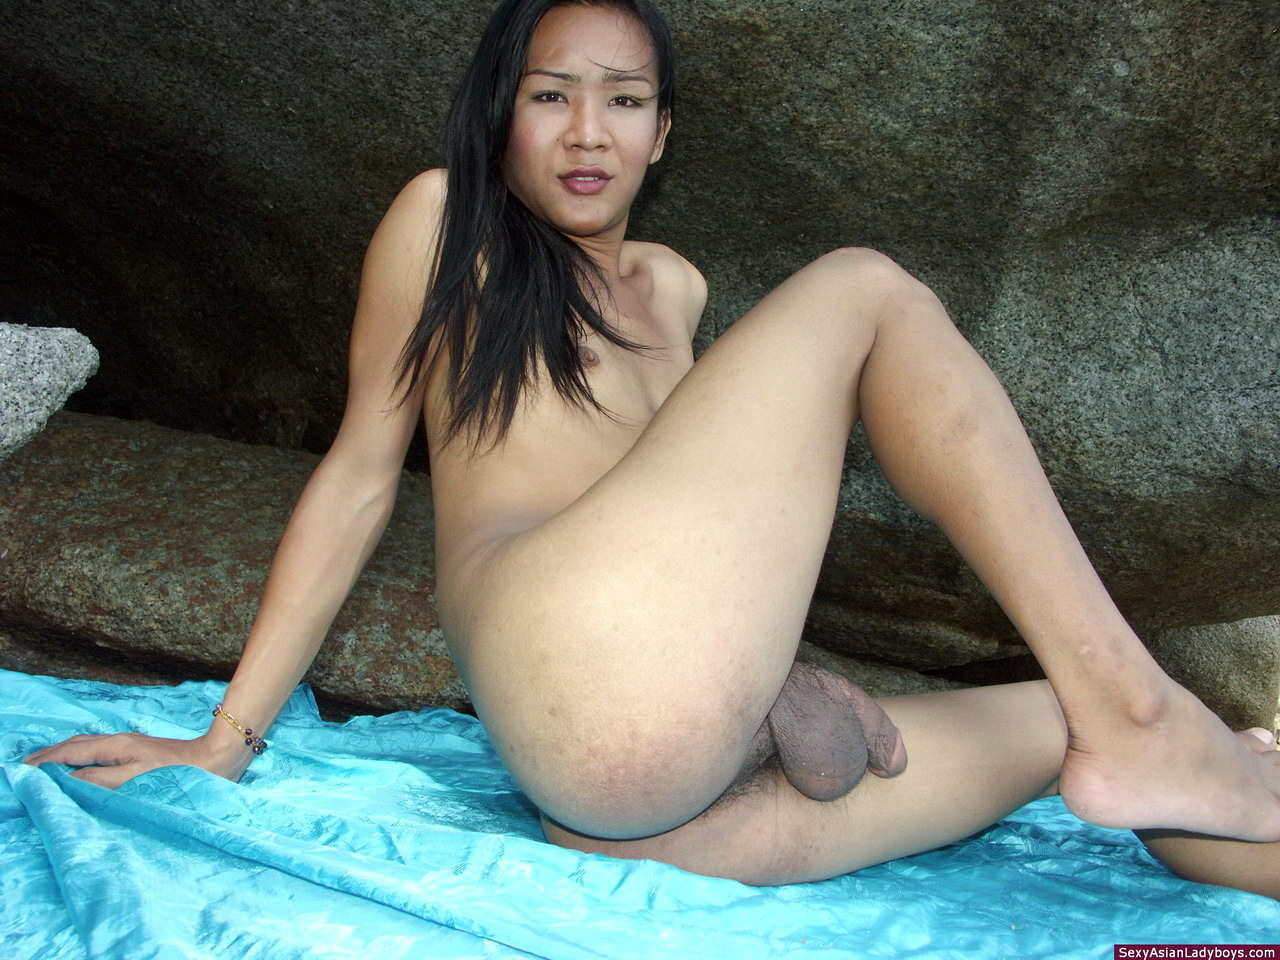 Innocent T-Girl With A Small Body And Enormous Balls Shooting A Load Of Cum On The Beach